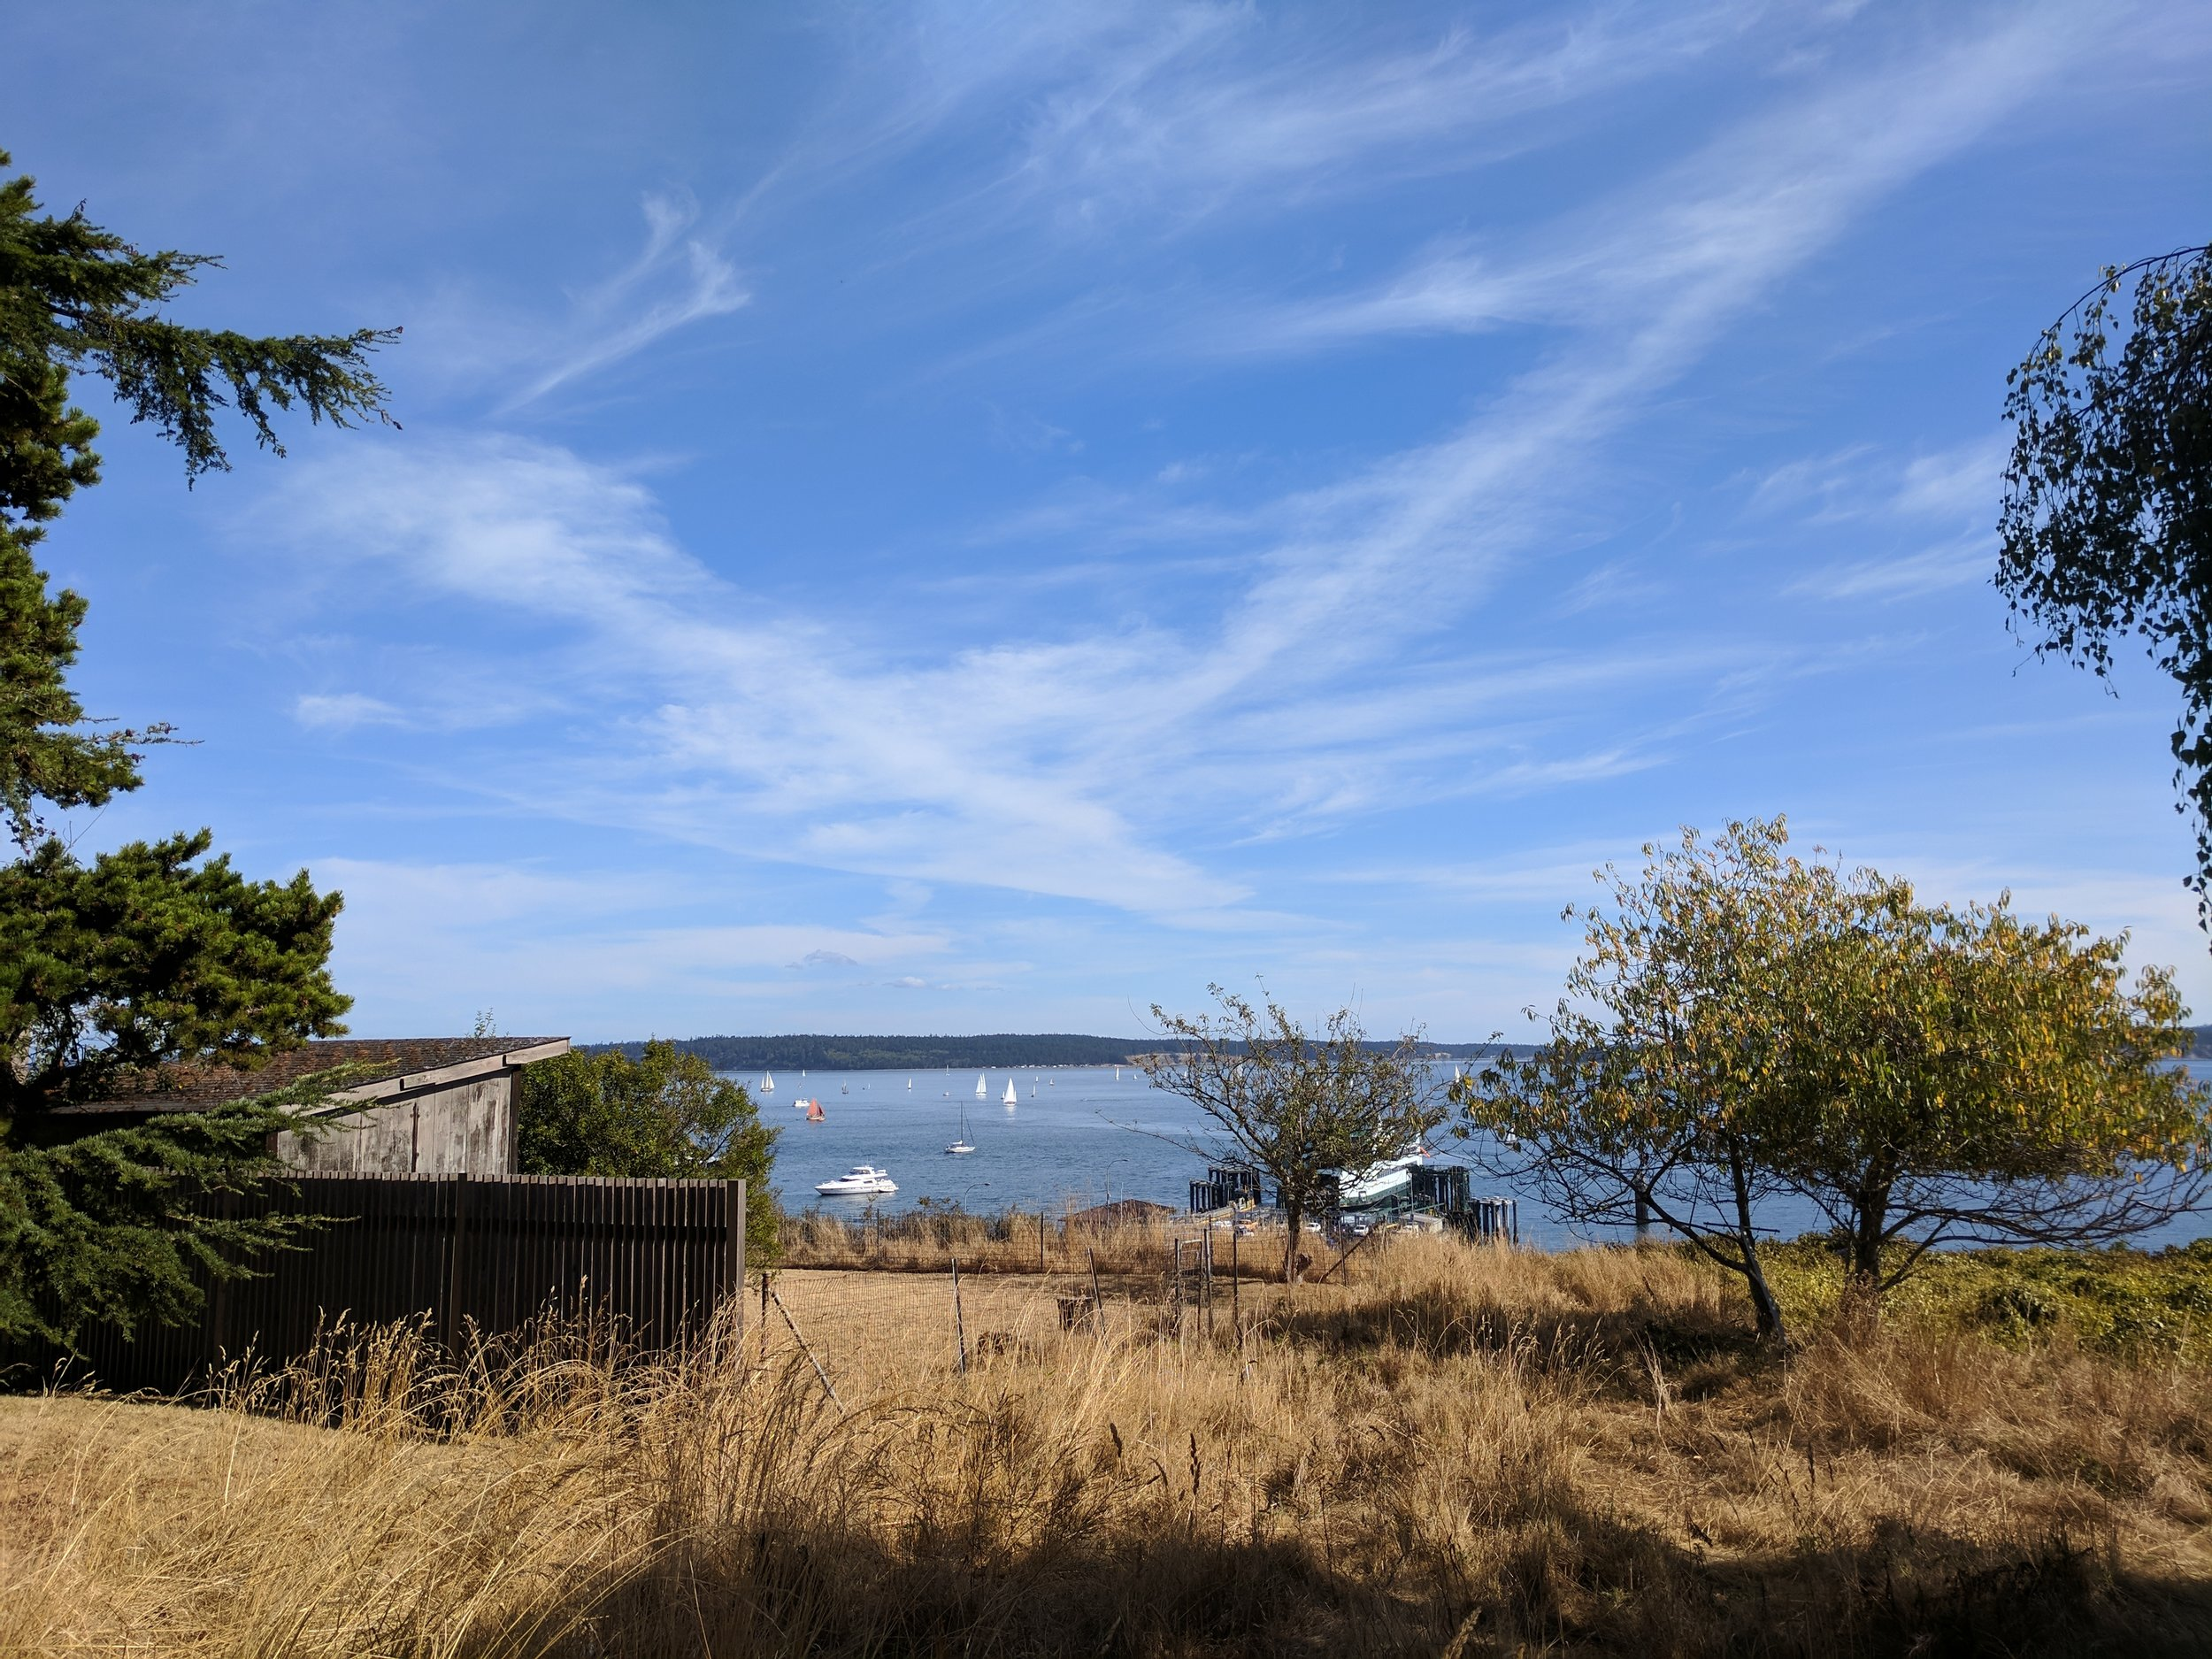 Just one of many beautiful views walking around Port Townsend.